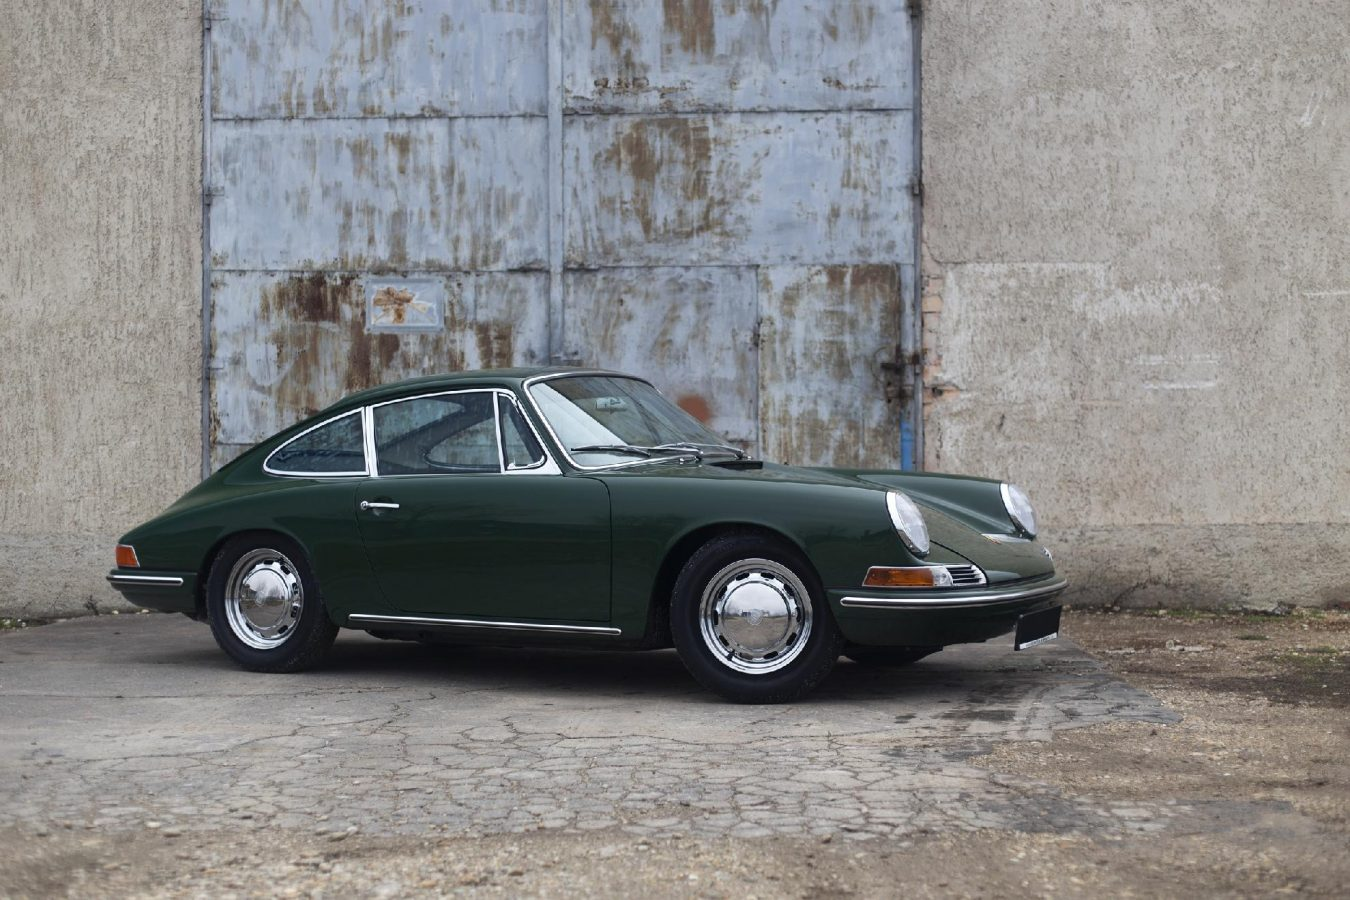 Grüner Porsche 911 SWB von Vehicle Experts